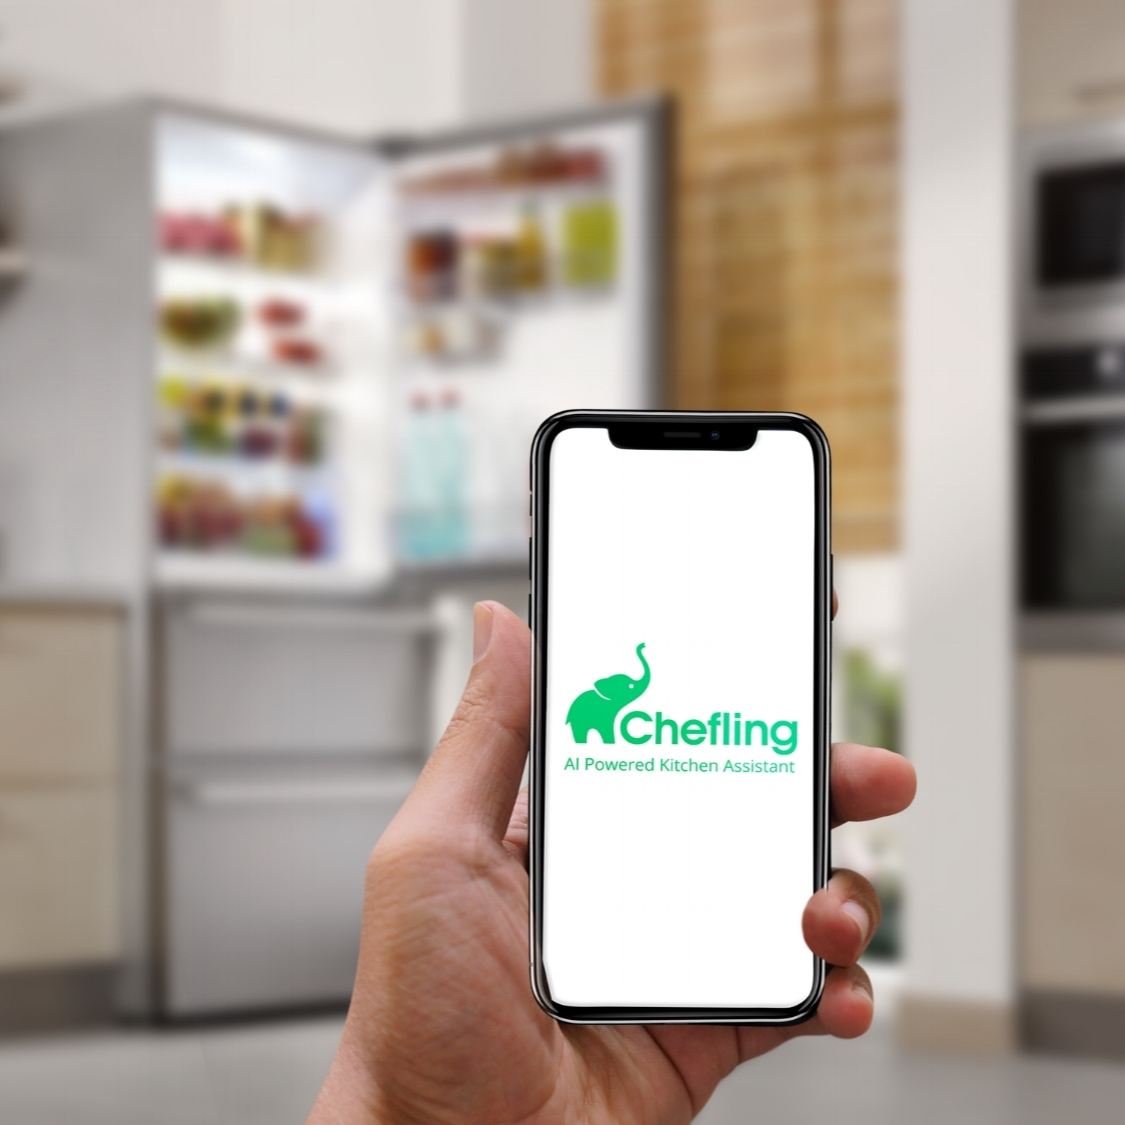 Connect with smart appliances - Connect your smart appliances with Chefling and take complete control of your kitchen with the ability to coordinate across multiple appliances at the same time. With Chefling, smart appliances work in symphony.